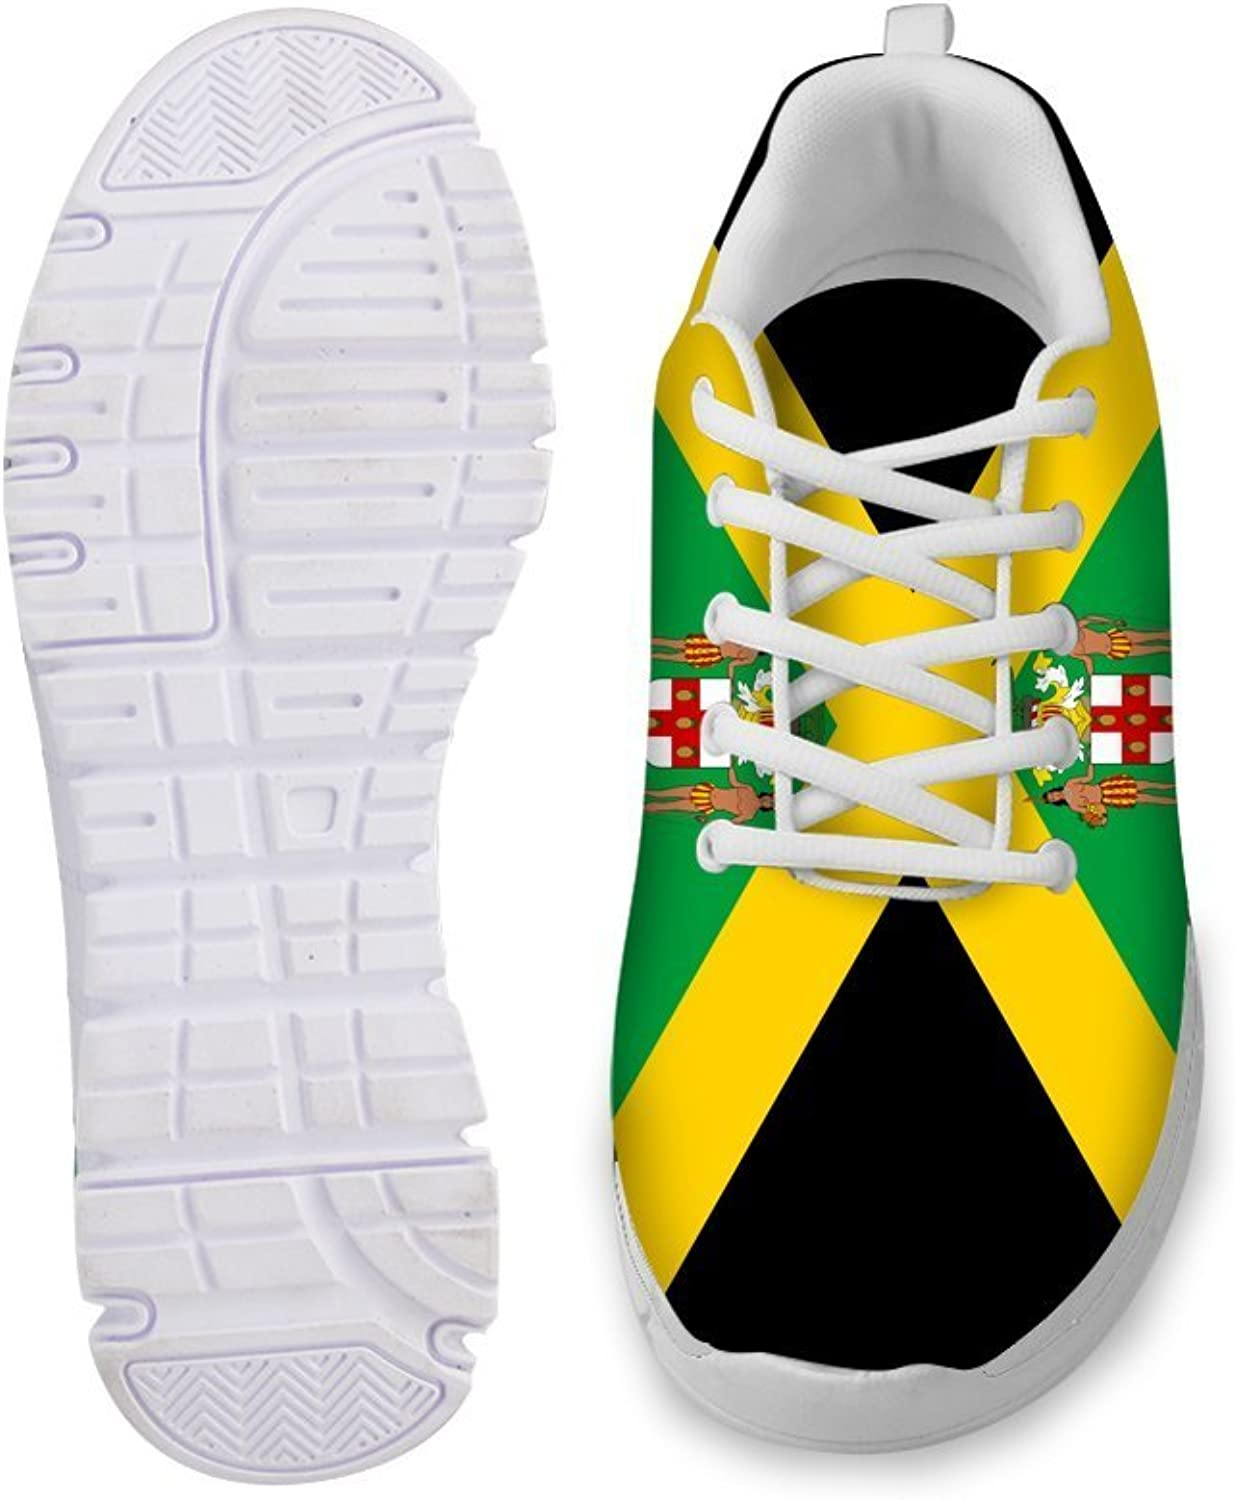 Owaheson Lace-up Sneaker Training shoes Mens Womens Jamaica Flag and National Emblem